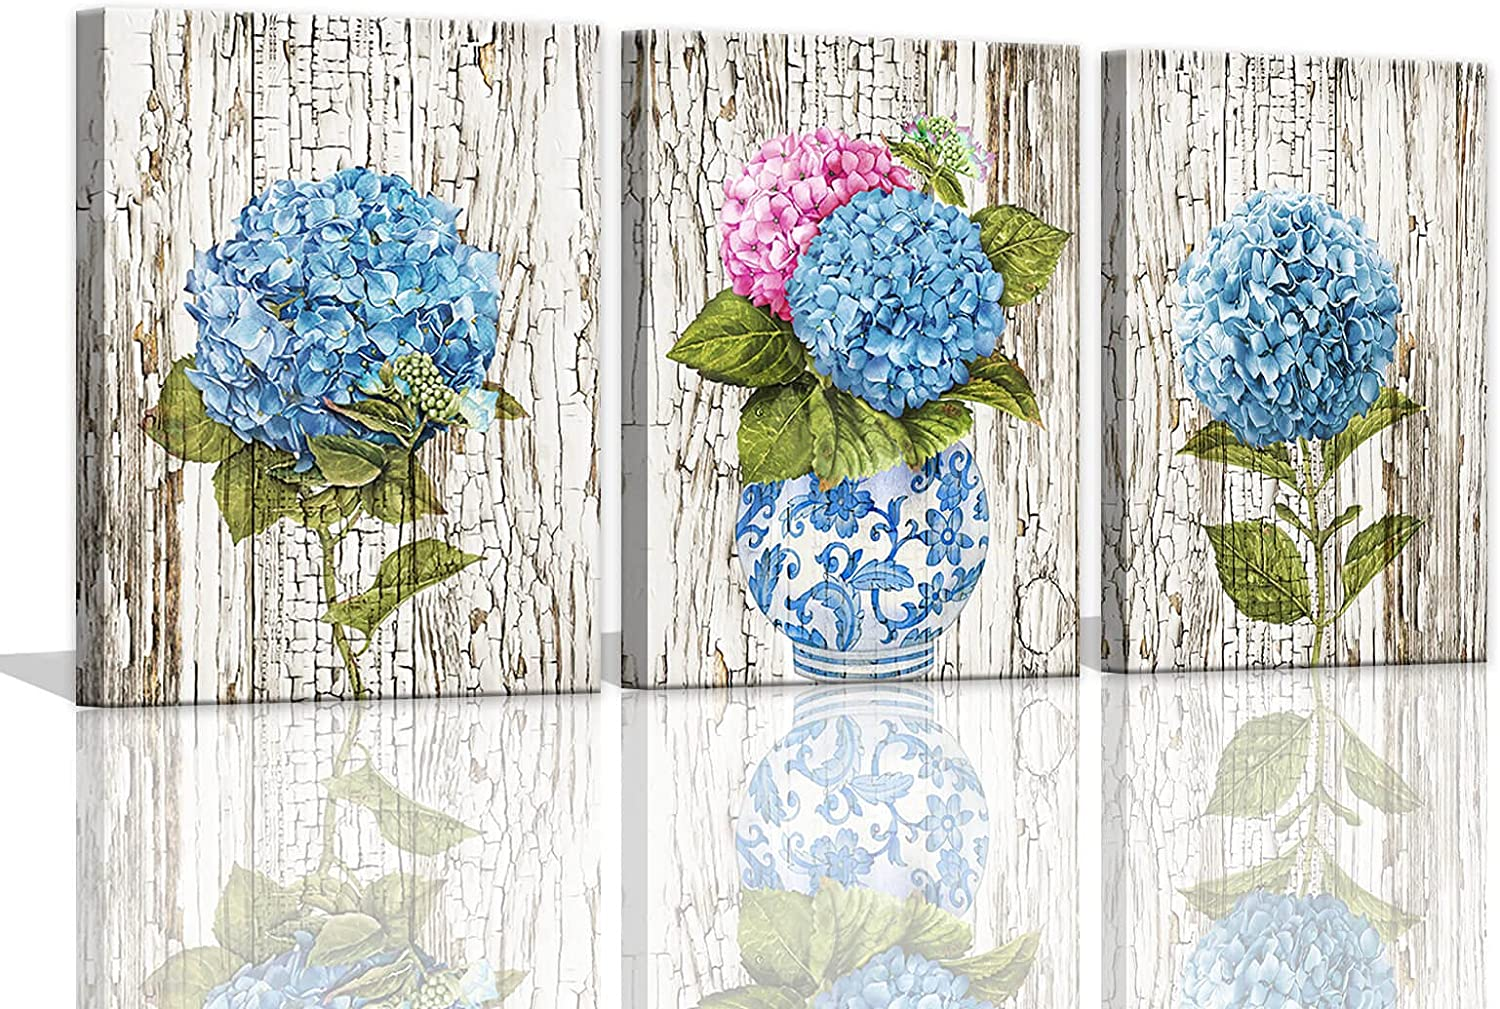 Rustic Wall Decor Watercolor Hydrangea Flower Wall Pictures for Bedroom Wall Art 3 Pieces Canvas Art for Women Kitchen Decor Country Theme Room Decorations Blue Artwork for Home Walls 12x16inchx3pcs